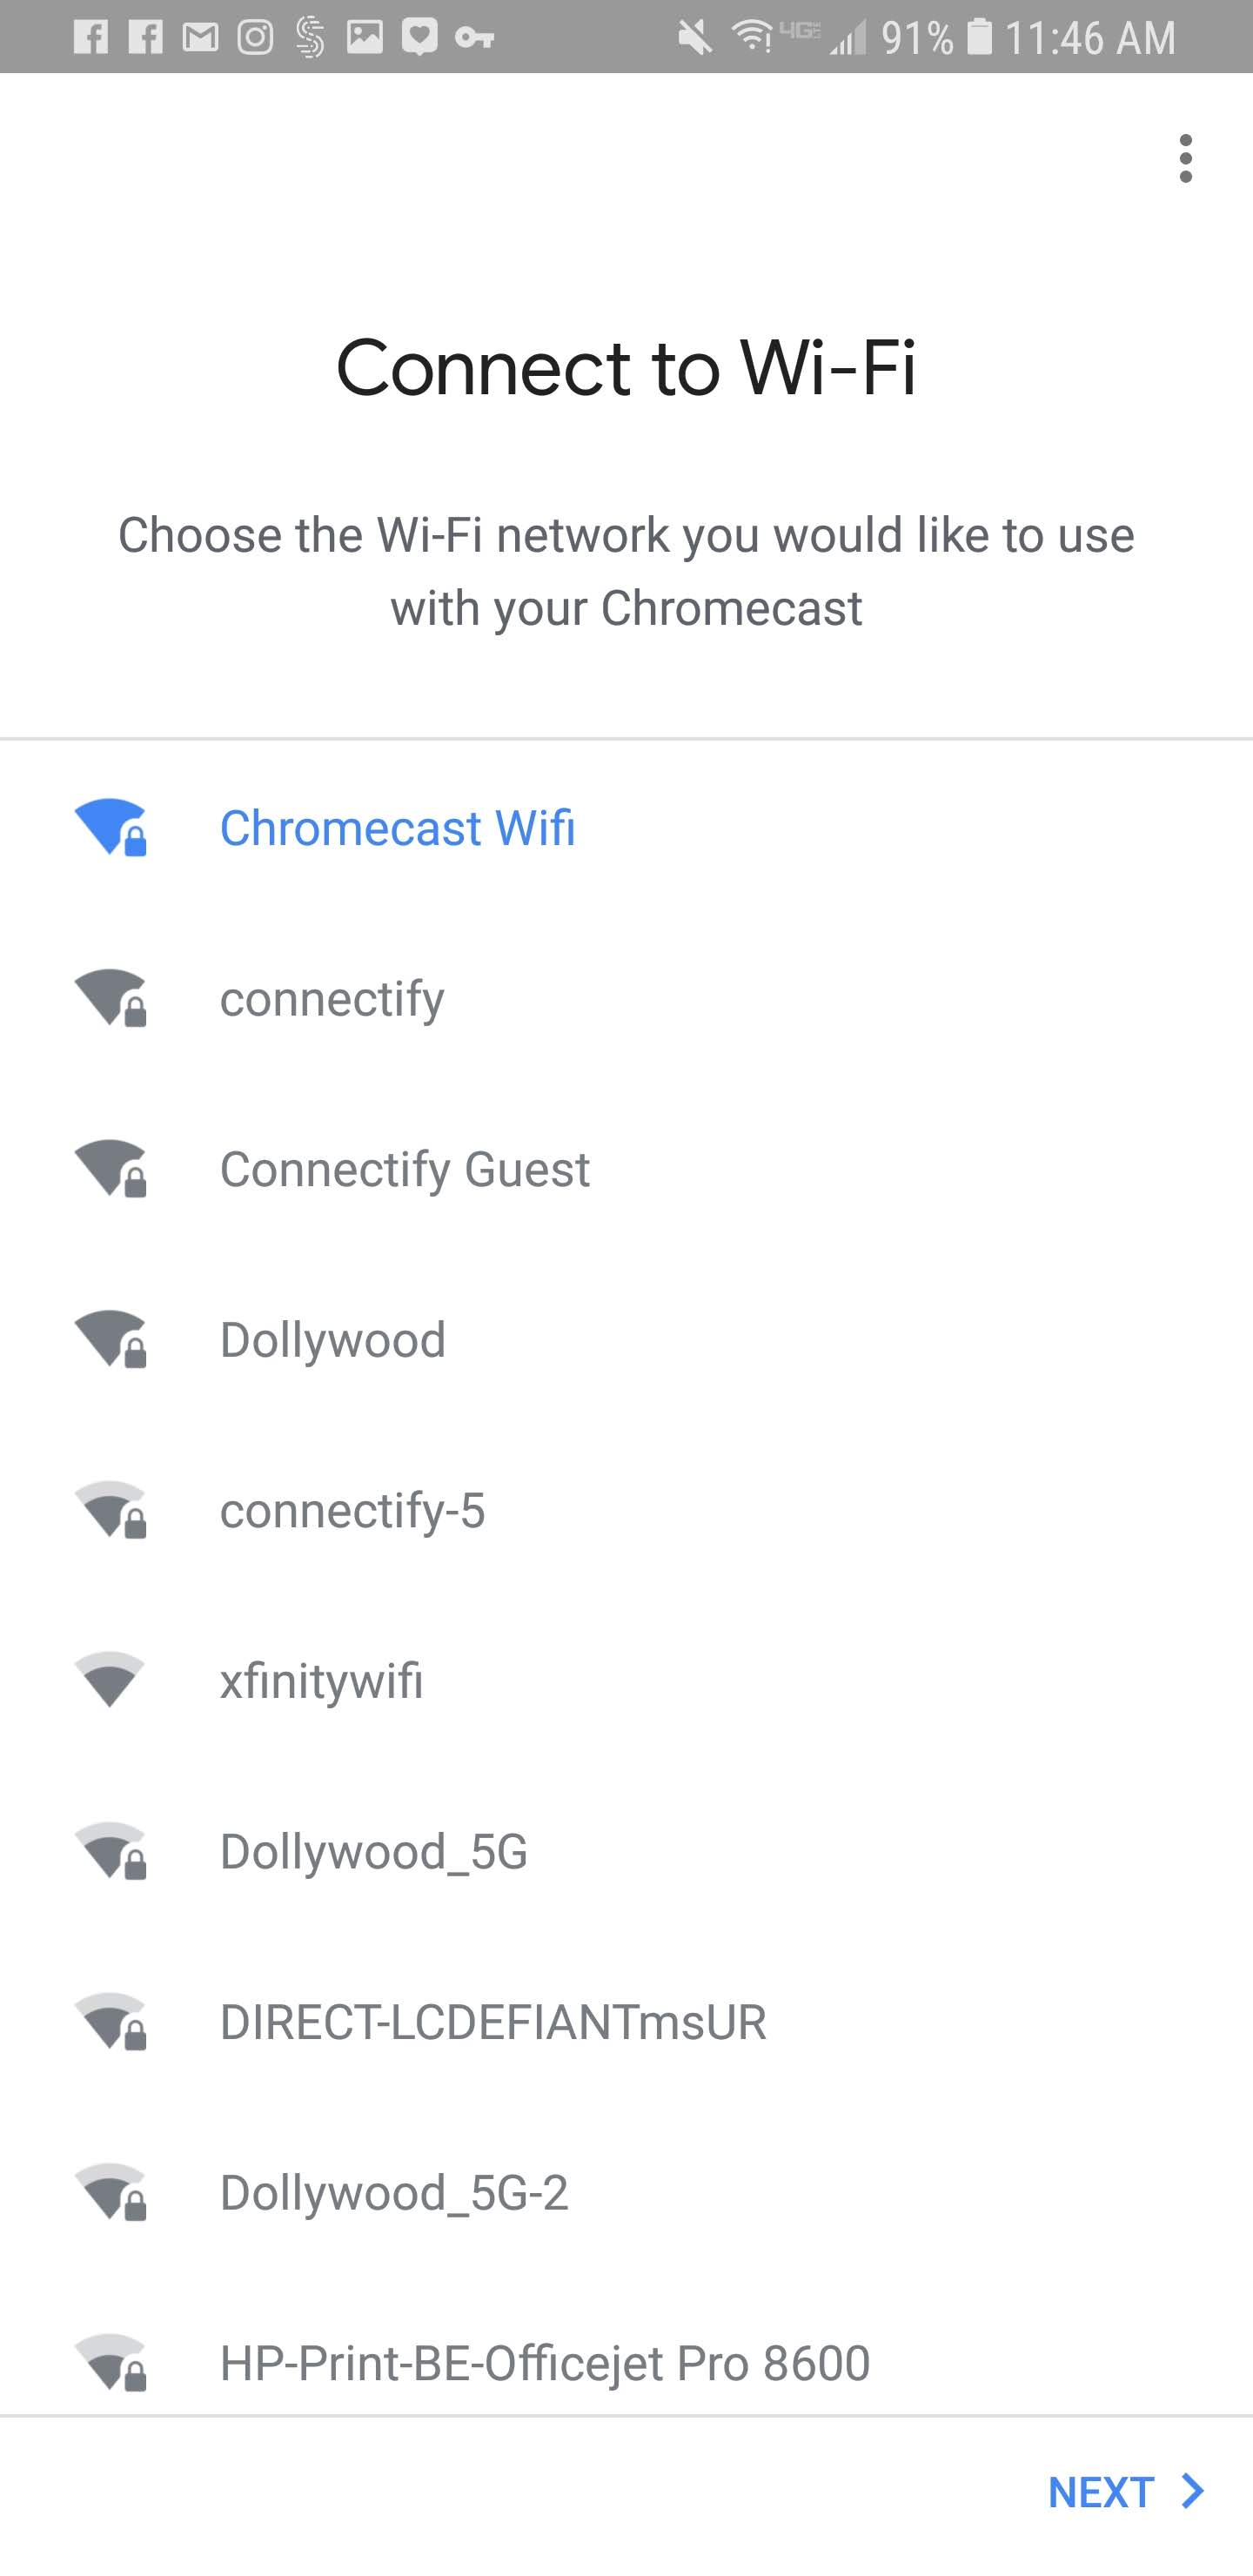 How to Connect a Chromecast to Connectify Hotspot